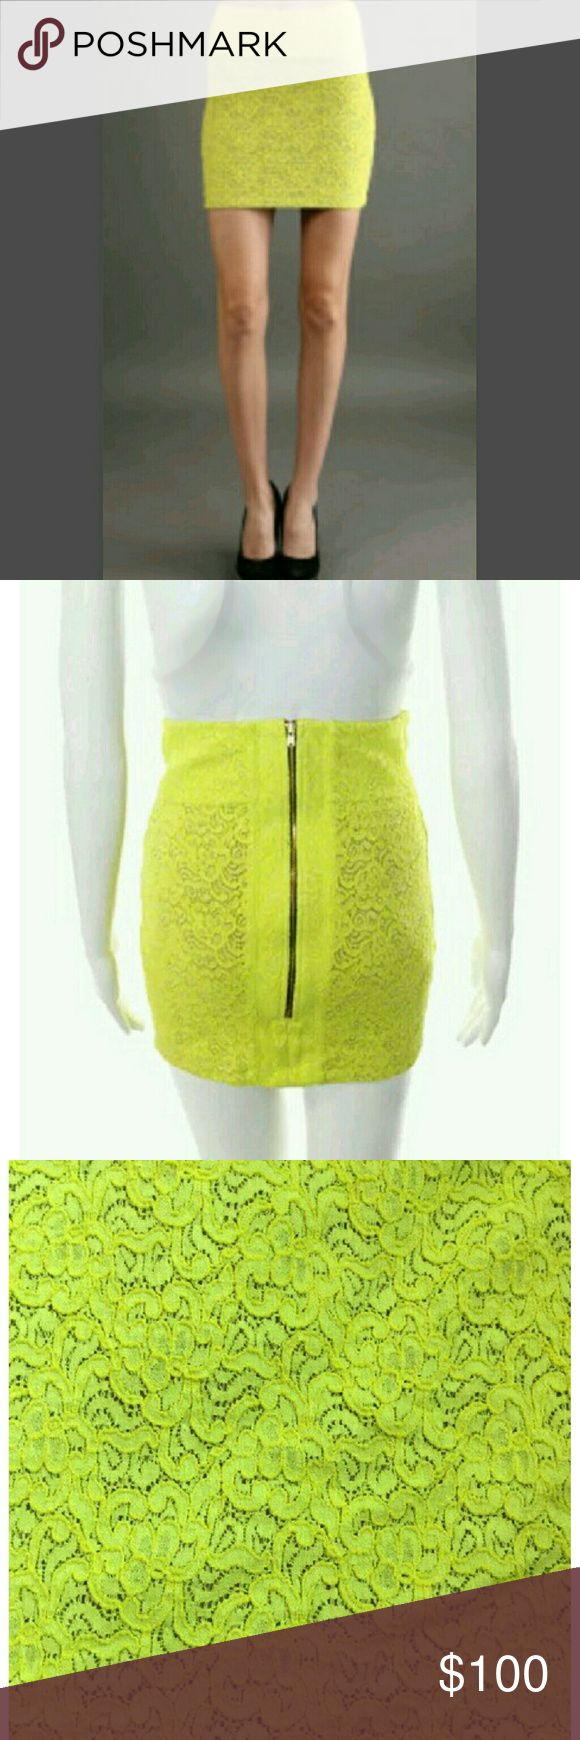 """Trendy Boulee Neon Yellow Green Lace Mini Skirt Brand new with tags.  Boulee Neon Yellow Green Chartreuse lace mini.  Size 4. Back Zip Closure has stretch. Fully lined. 53% Nylon 45% Cotton 2% Spandex.  26"""" W 34"""" Hip total length 16"""" Boulee Skirts Mini"""